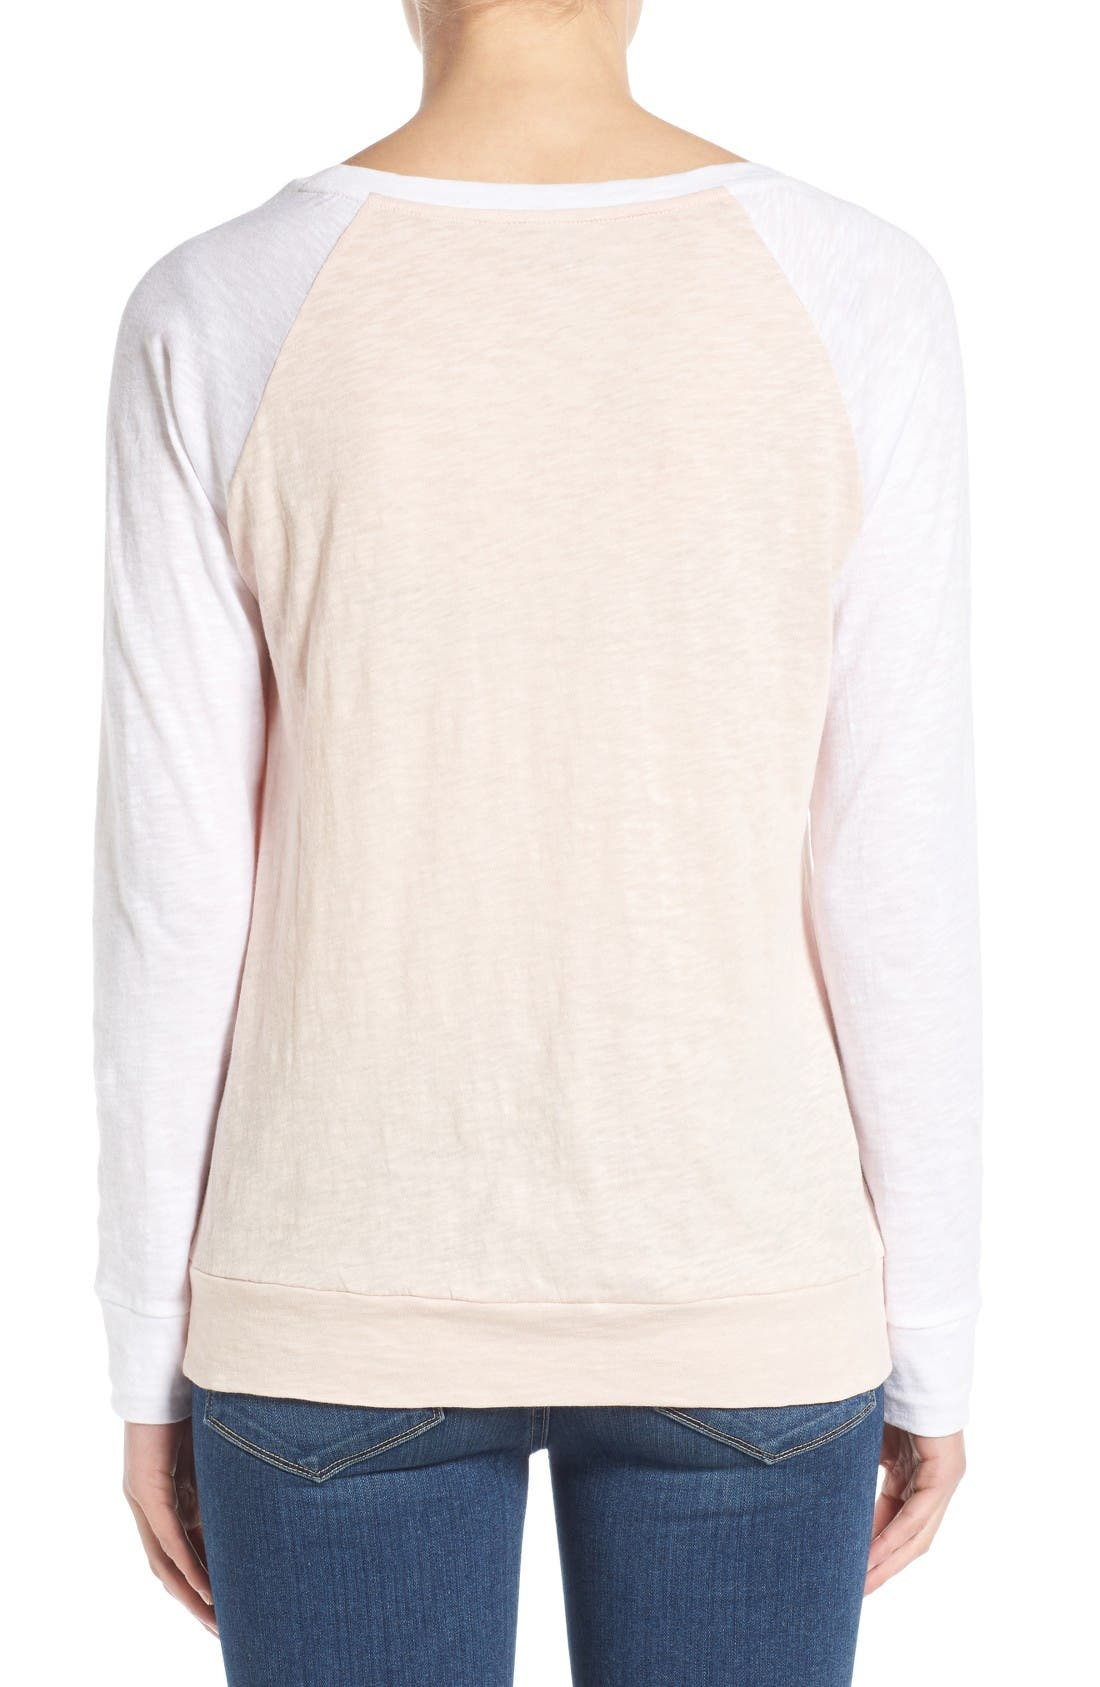 Lightweight Colorblock Cotton Tee,                             Alternate thumbnail 6, color,                             Pink Peach- White Colorblock